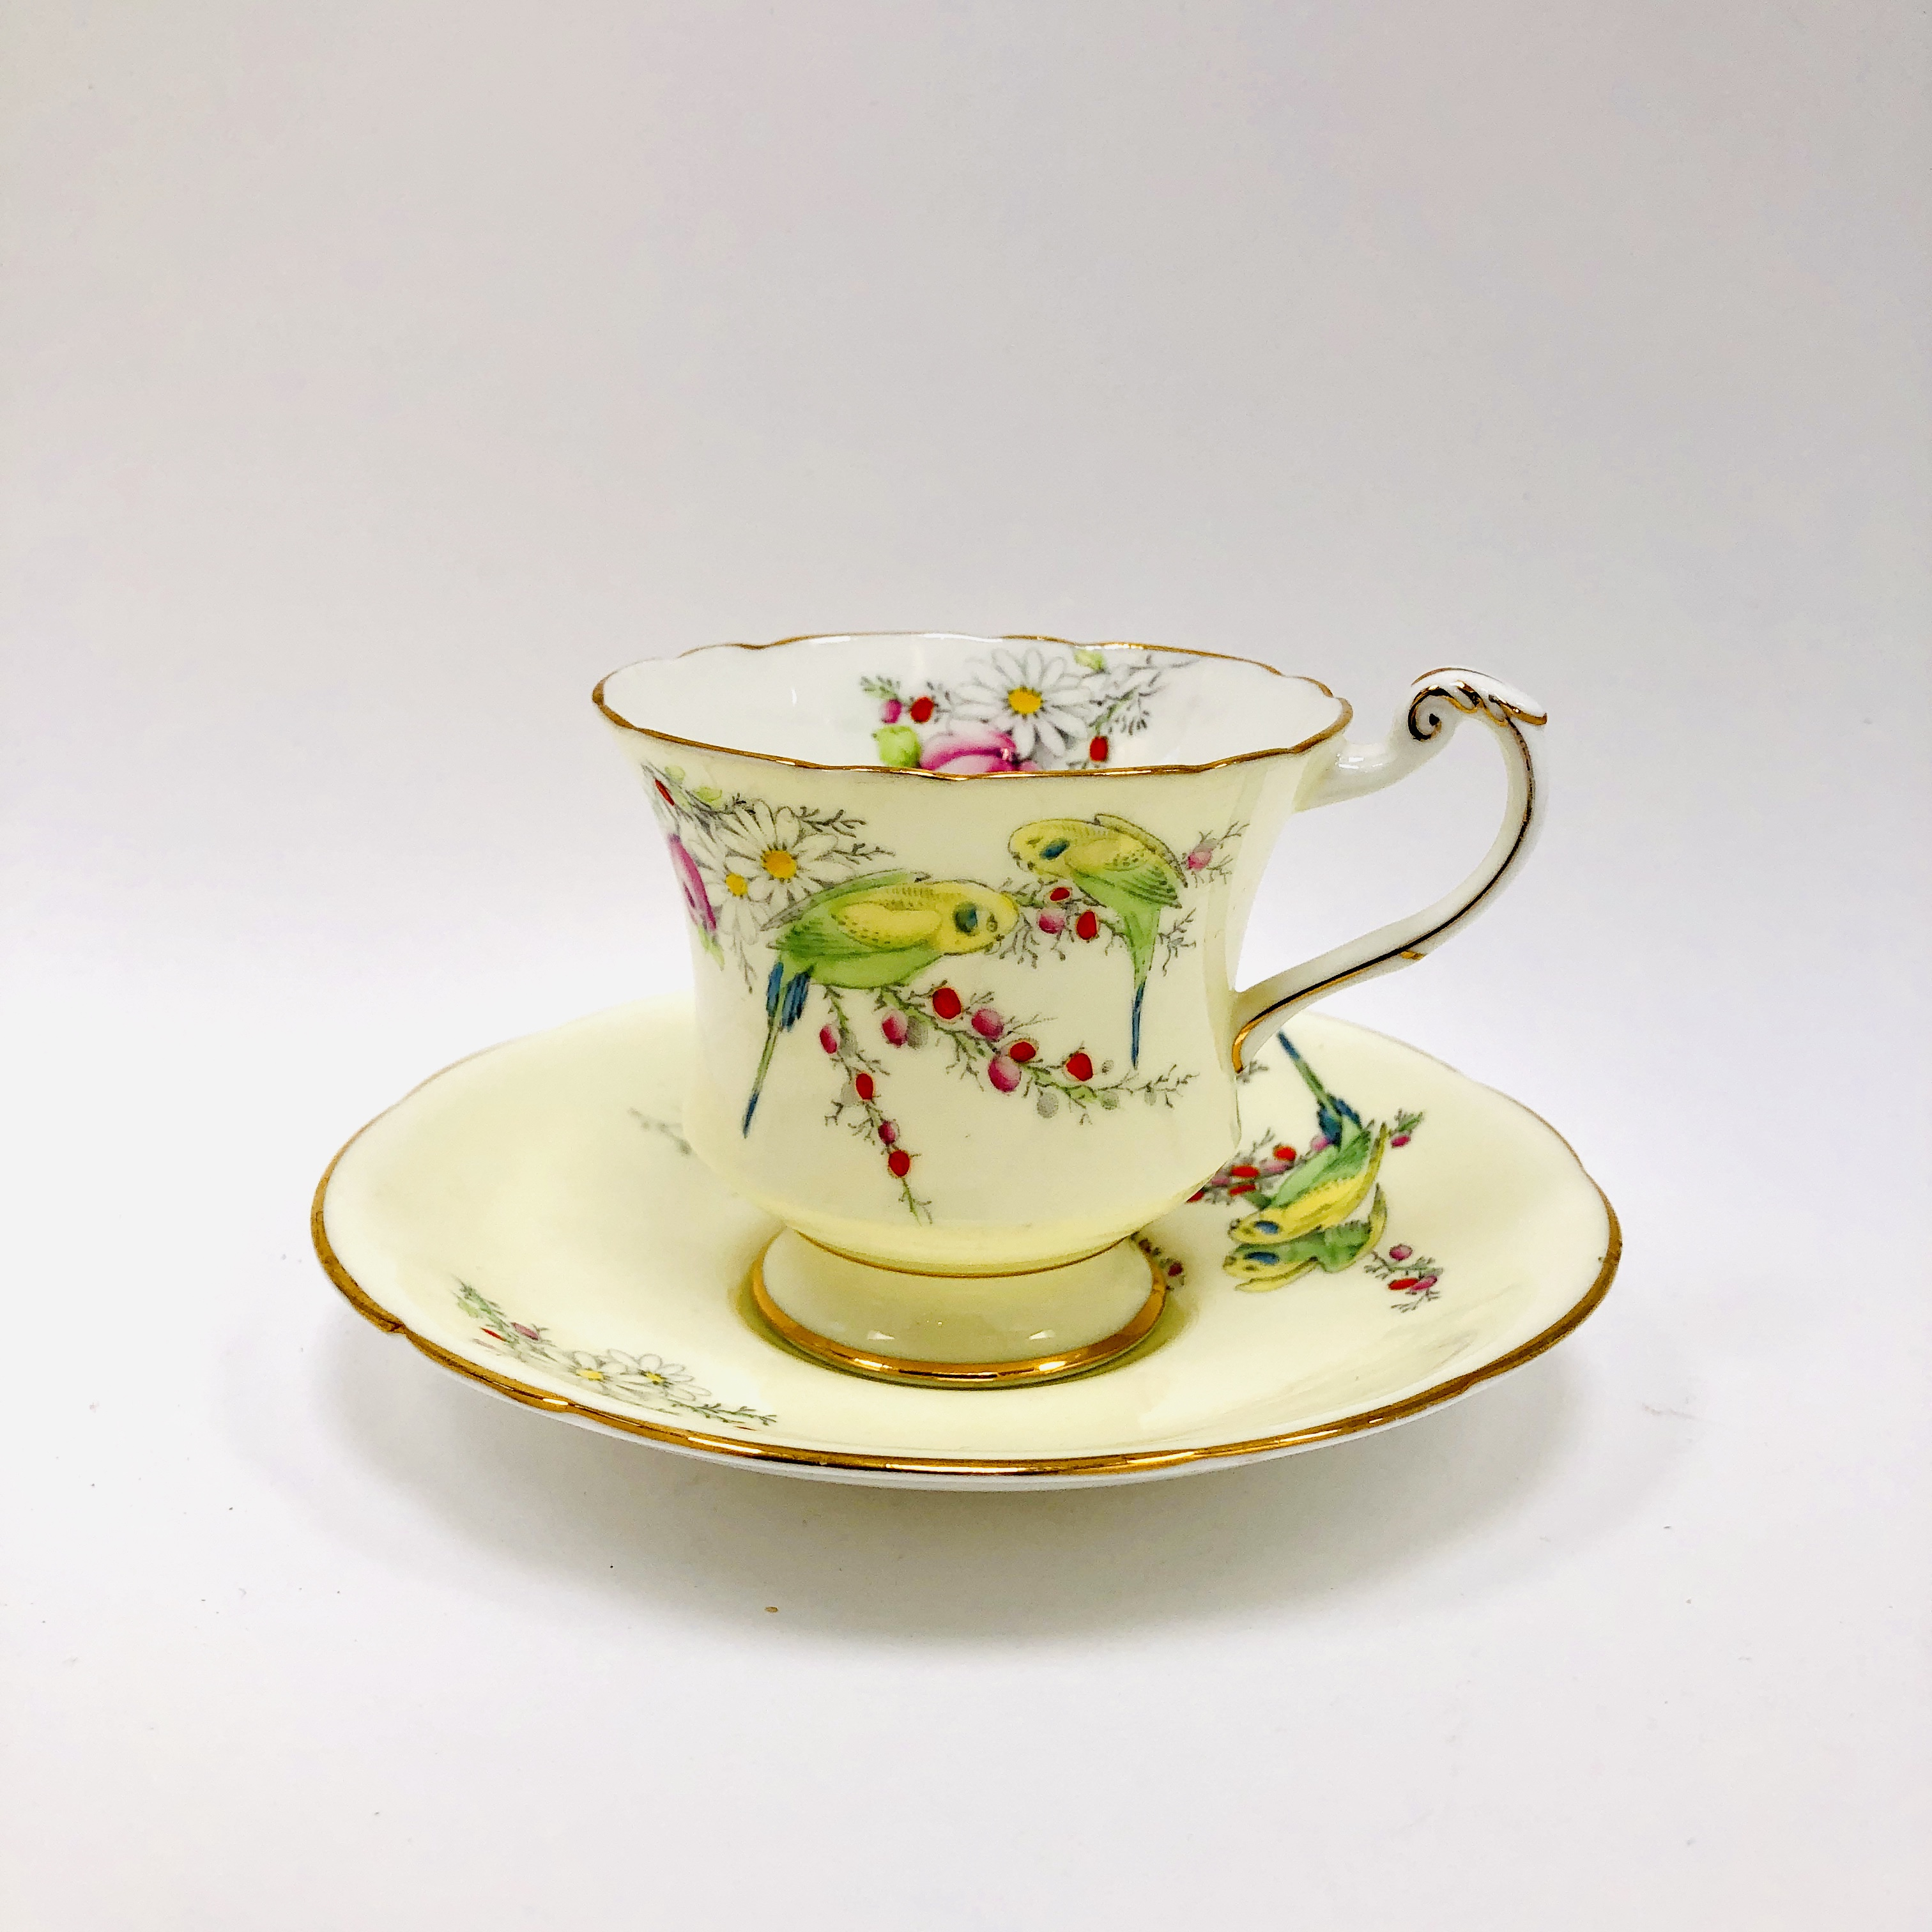 Vintage Princess Margaret Rose Footed Cup And Saucer Paragon England Budgies Parakeets Birds Cream Tea Cup Teacup Saucer Ibon Antiques